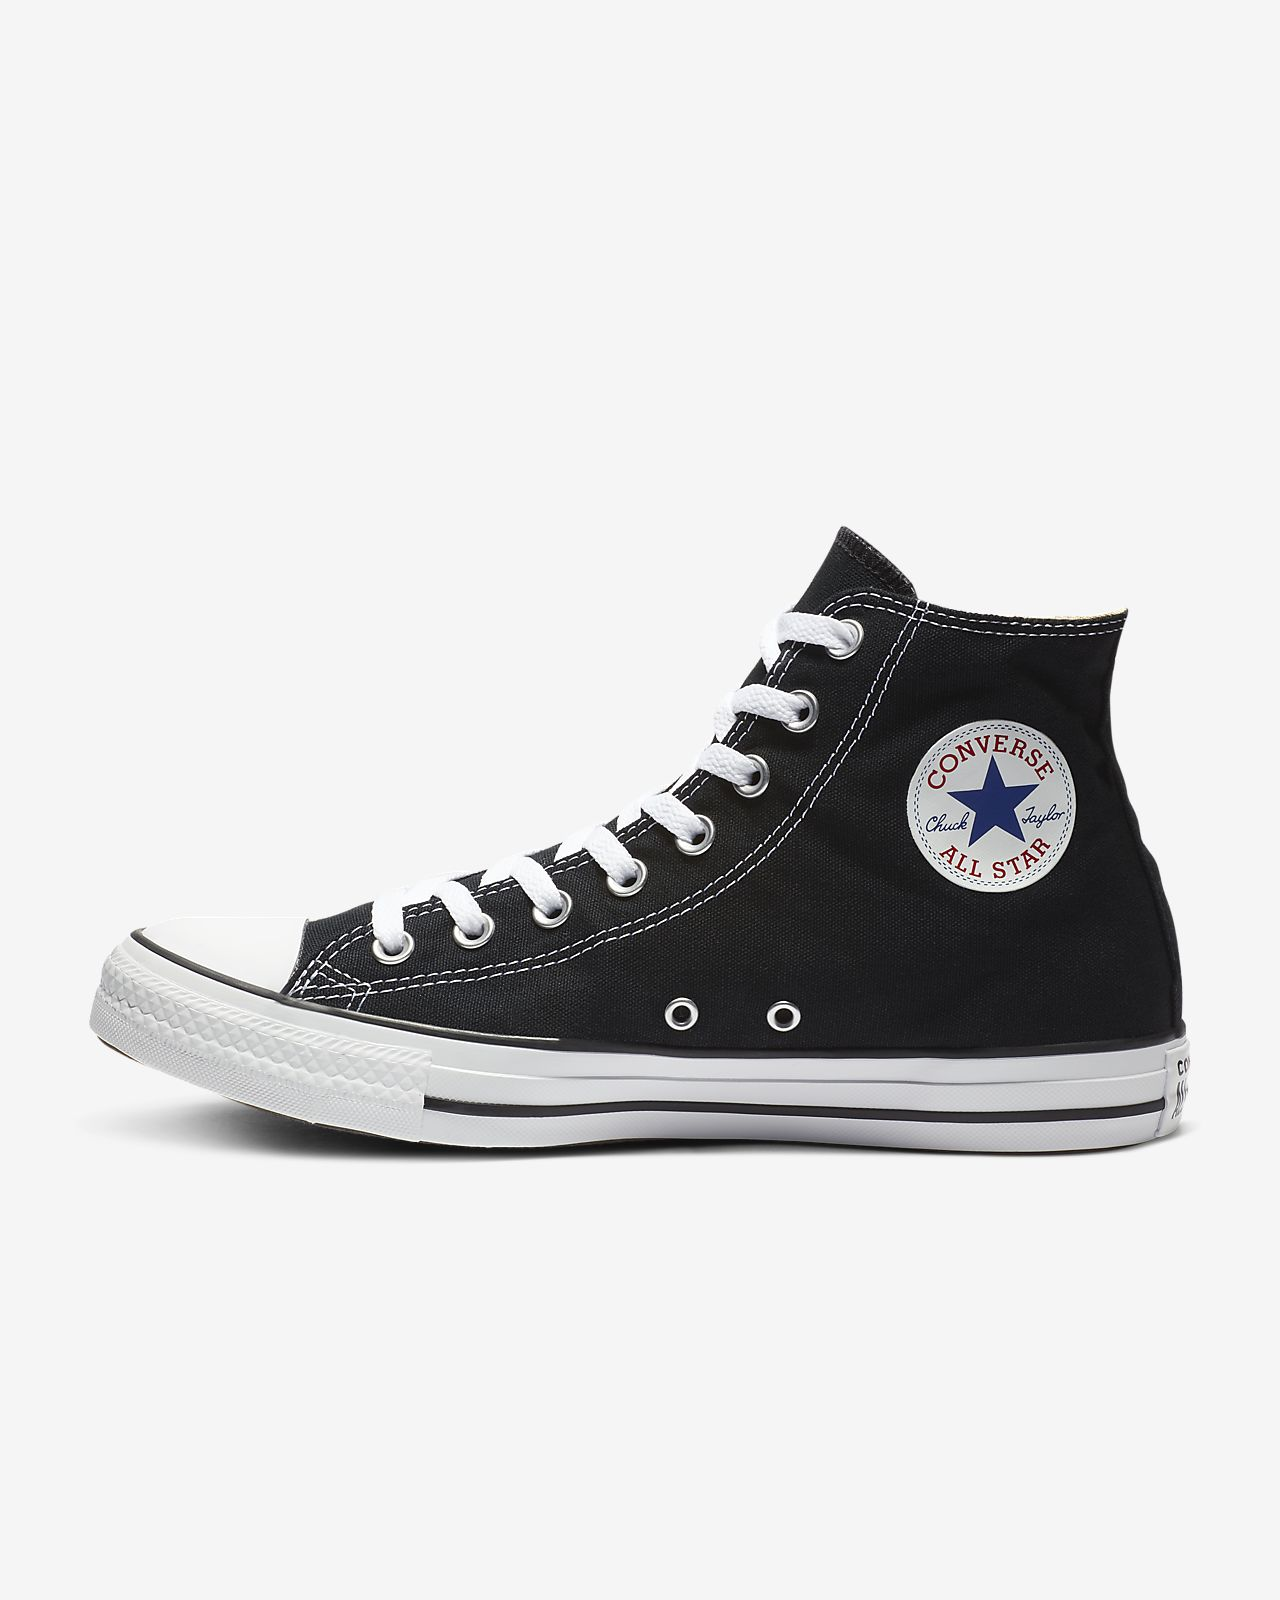 9d181a8a8d5 Converse Chuck Taylor All Star High Top Unisex Shoe. Nike.com